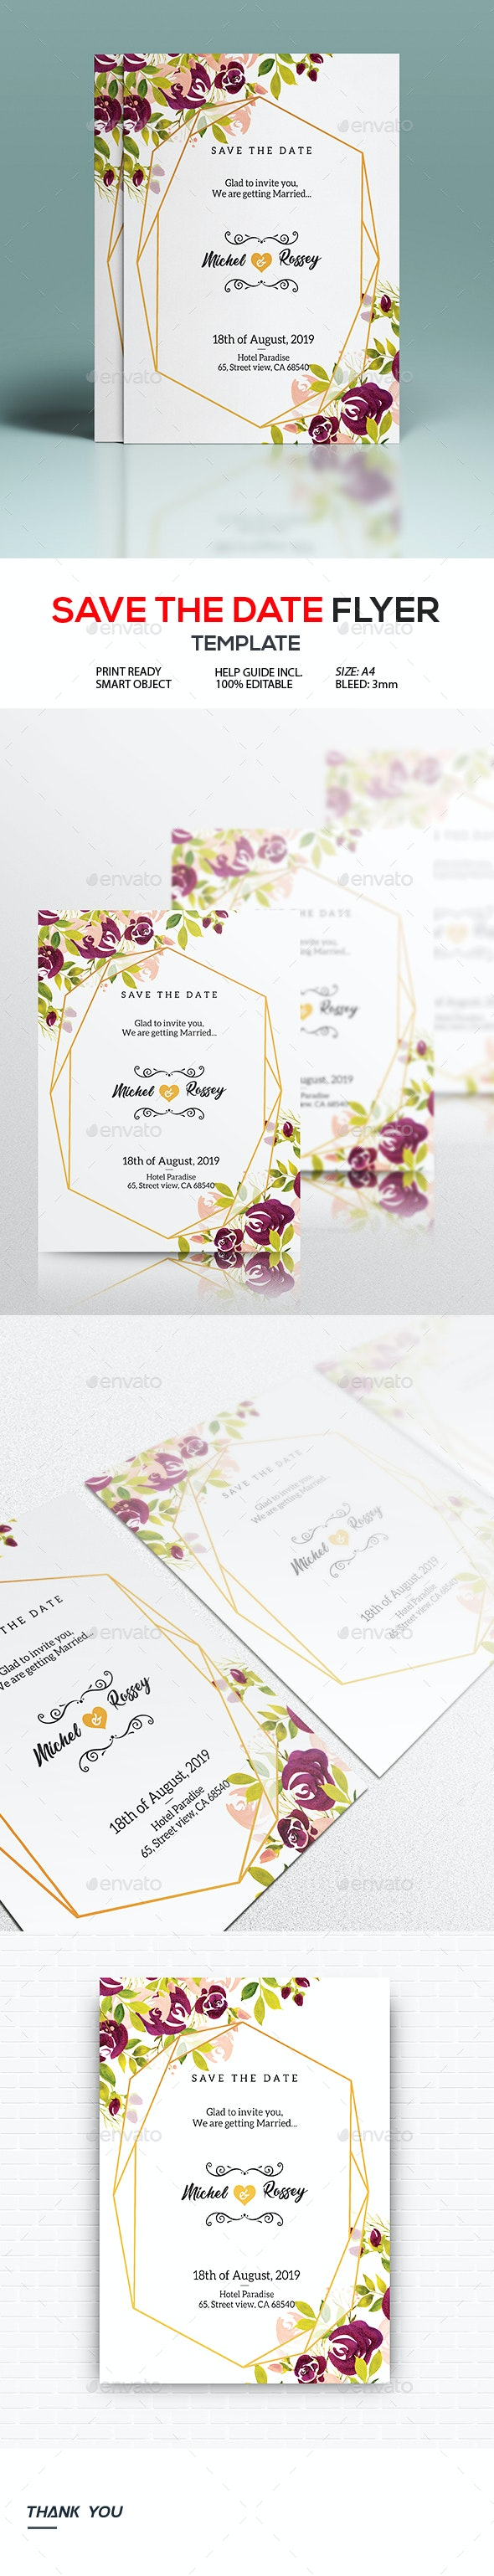 Wedding Invitation and Save The Date - Weddings Cards & Invites